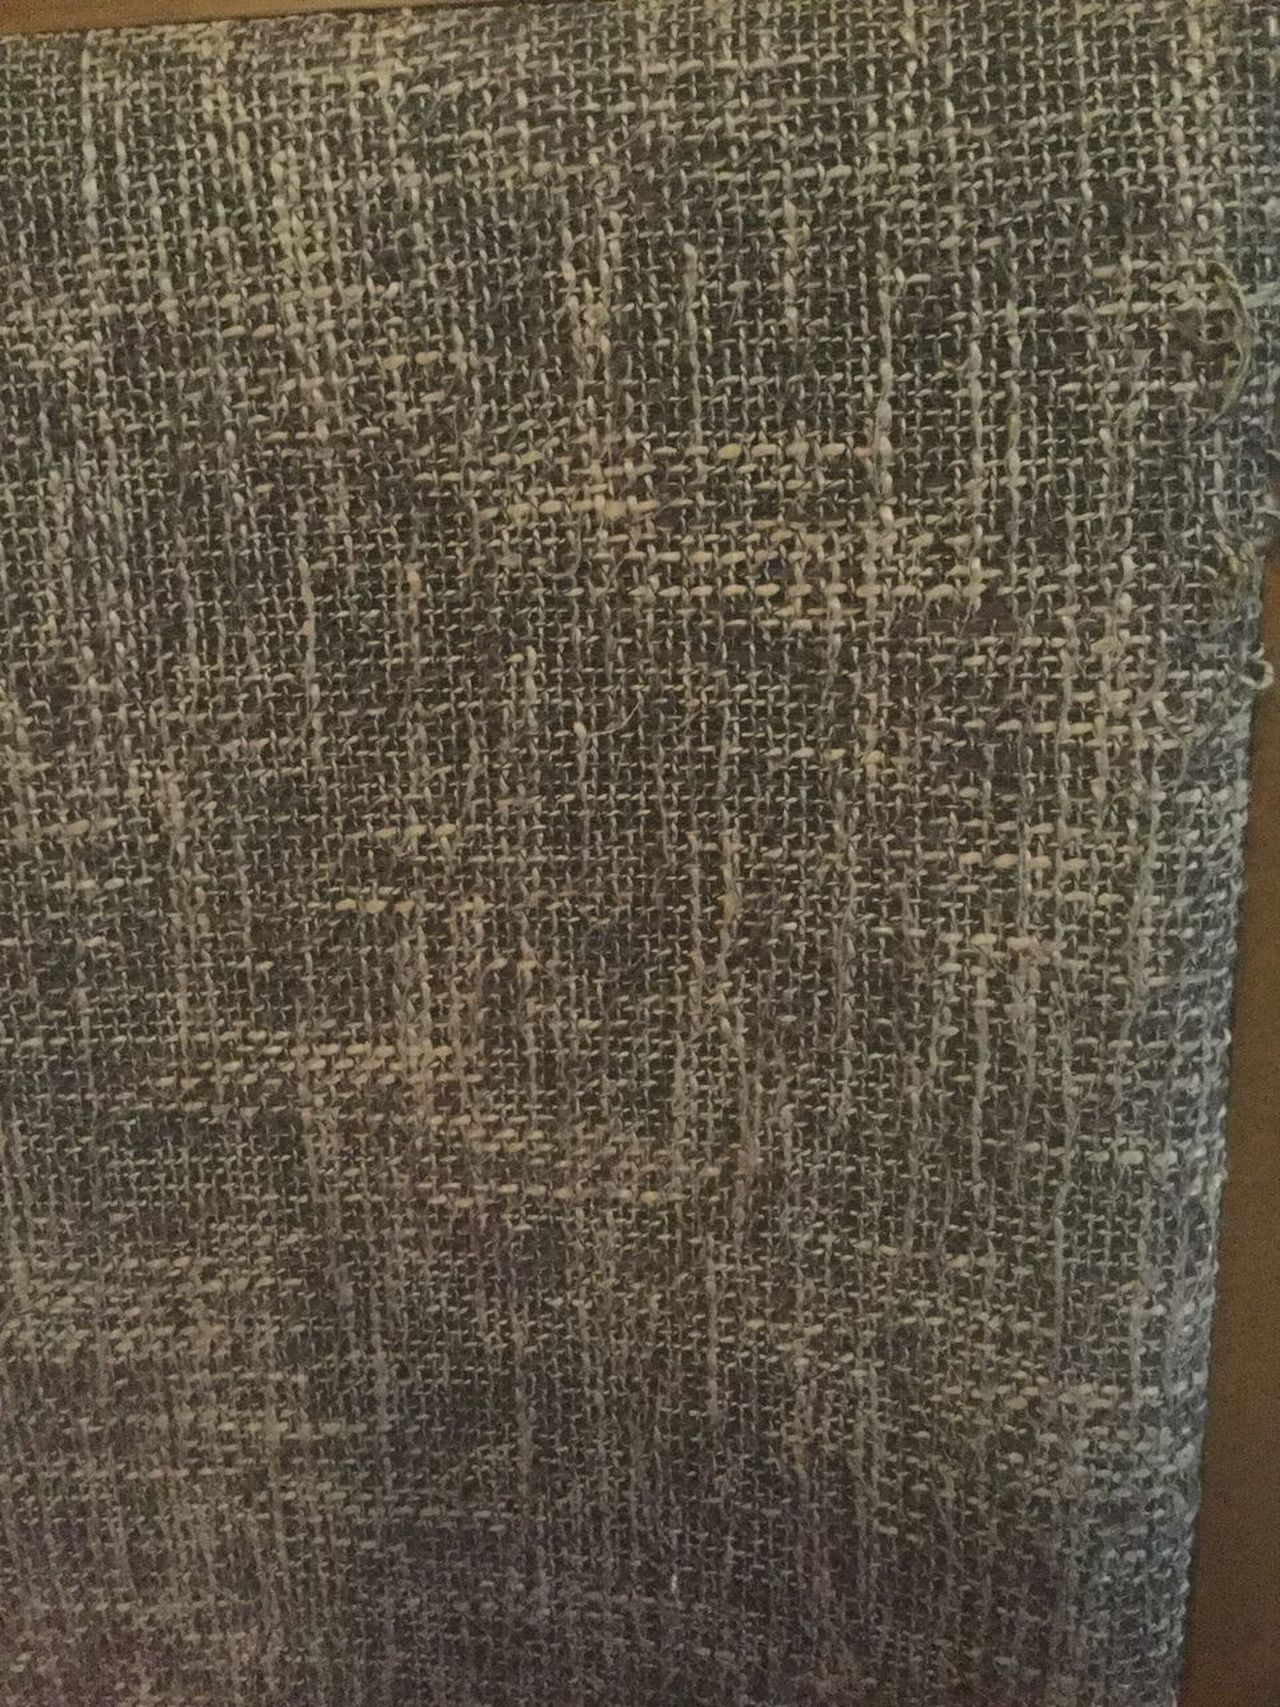 Abstract Backgrounds Brown Burlap Canvas Close-up Full Frame Material No People Pattern Rough Textile Textured  Woven